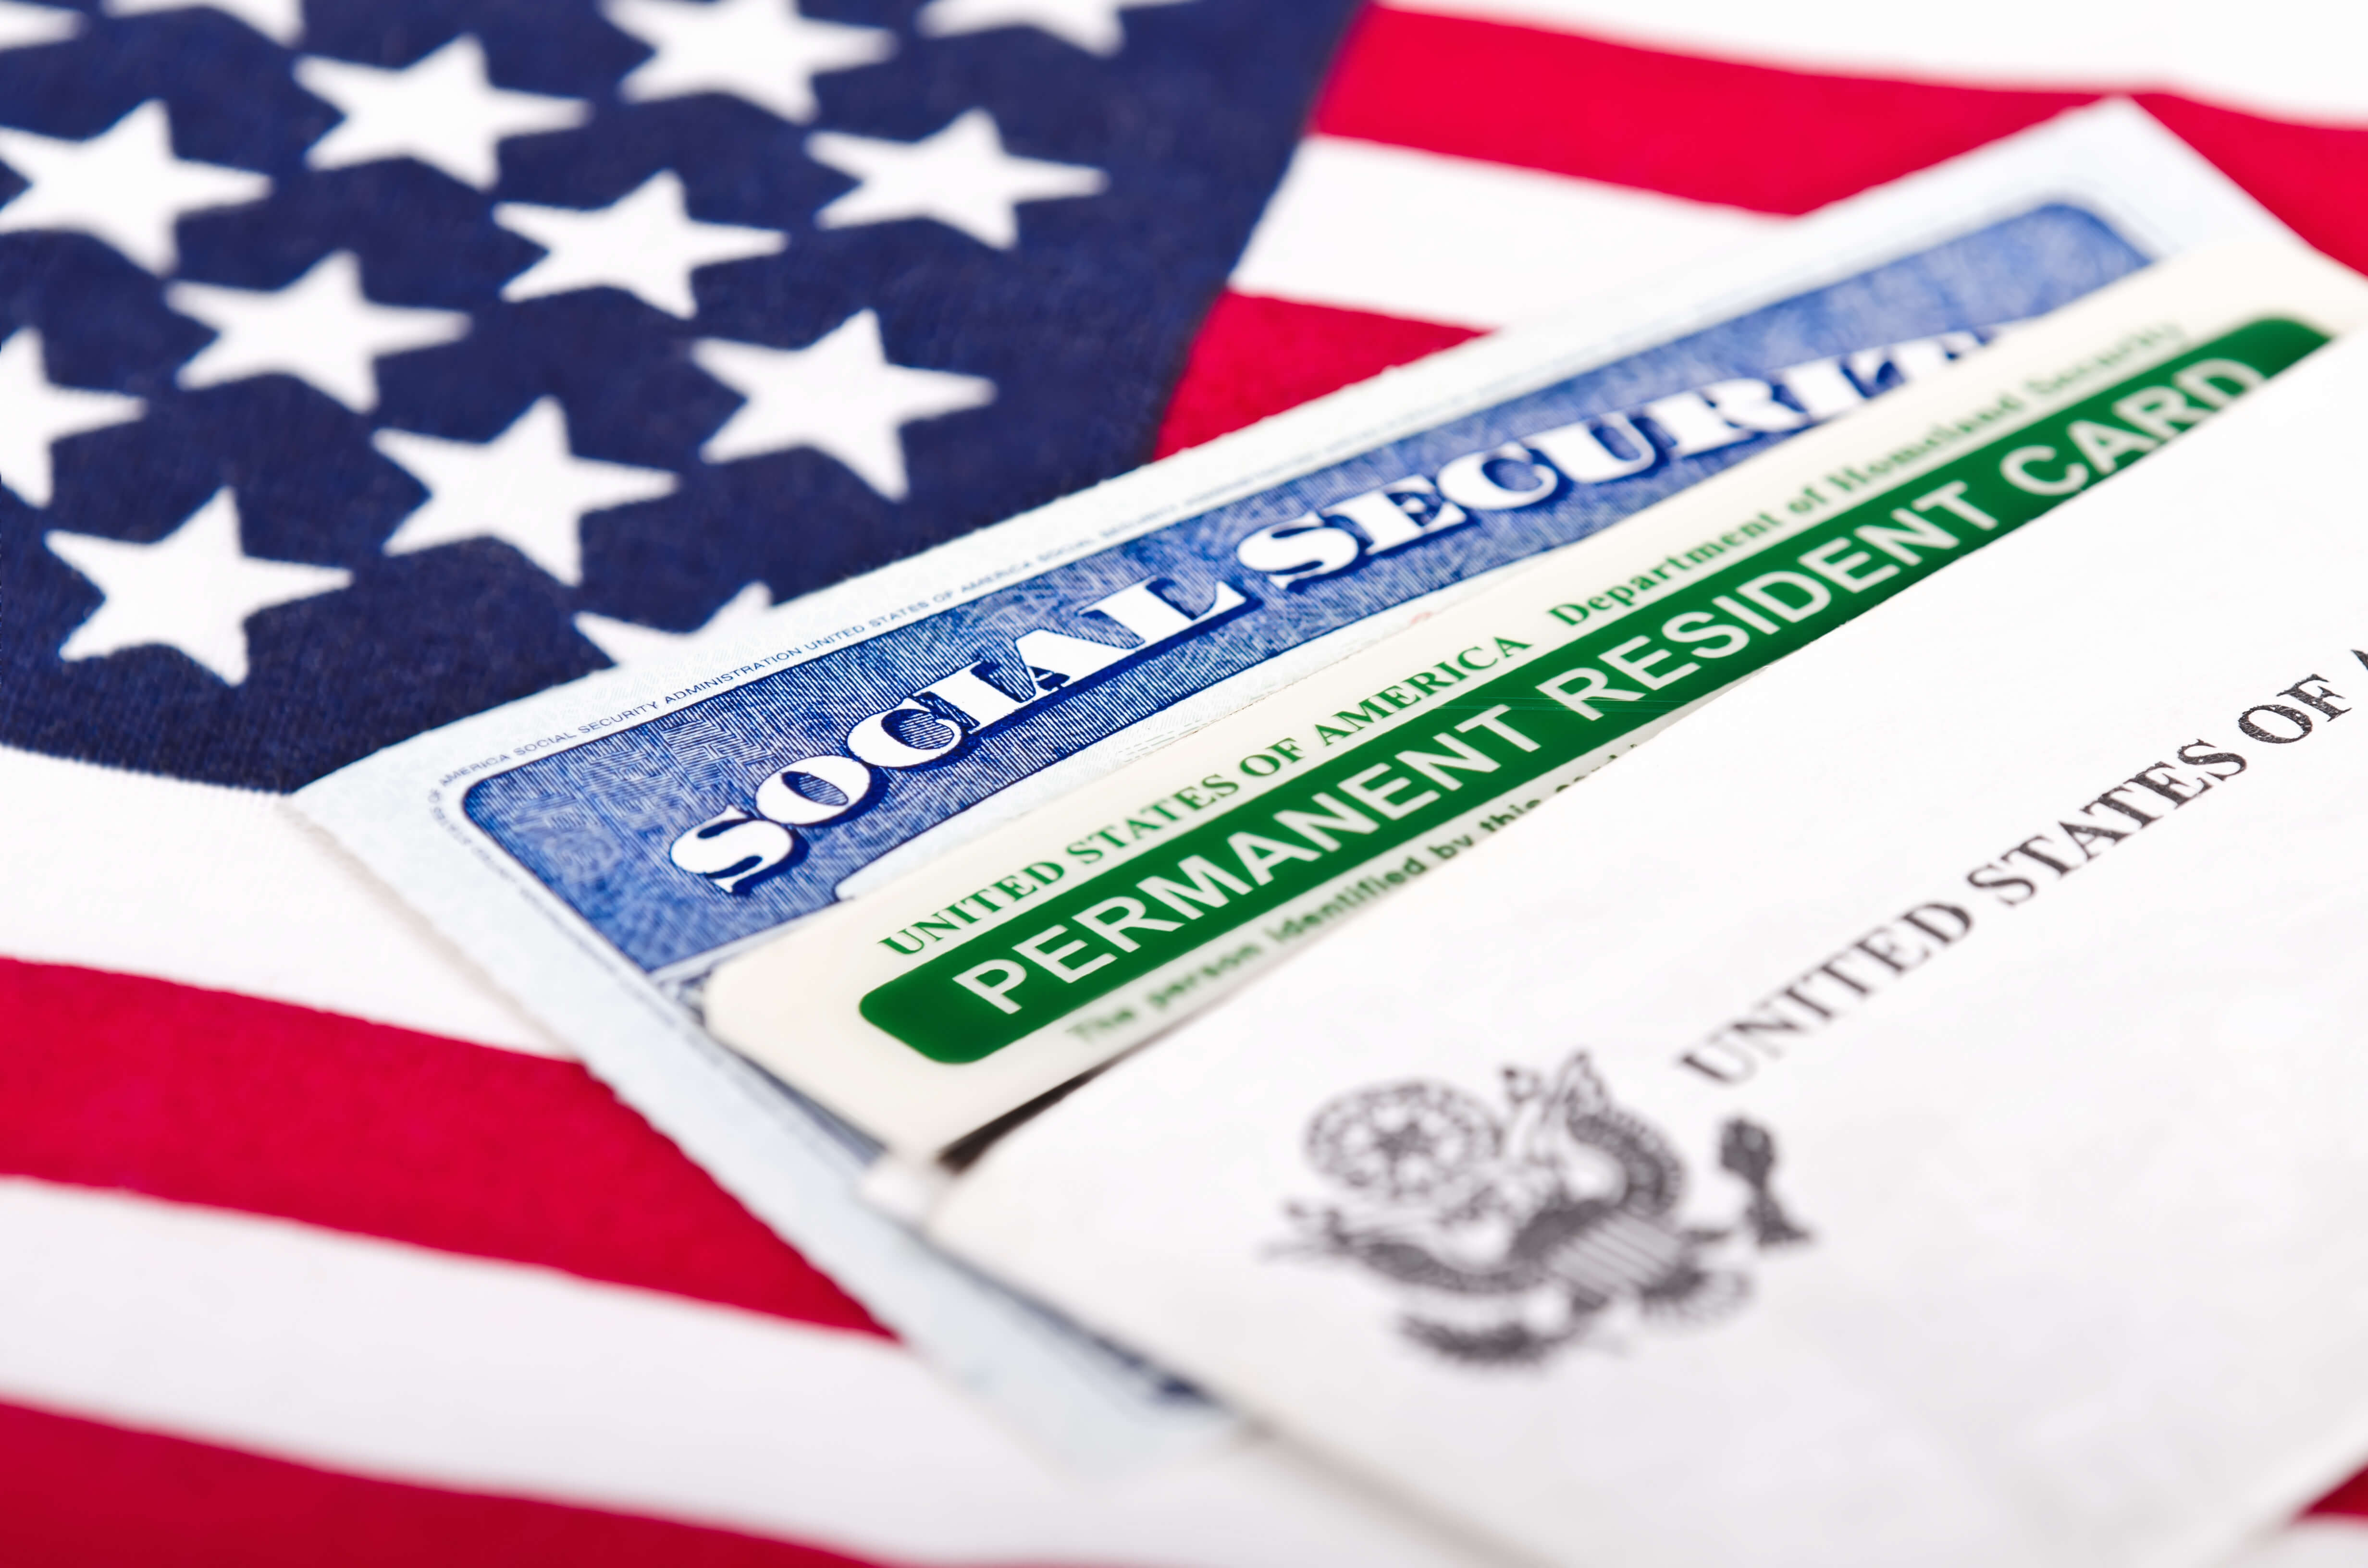 Is it possible to transition from a J-1 to a Green Card in the U.S.?